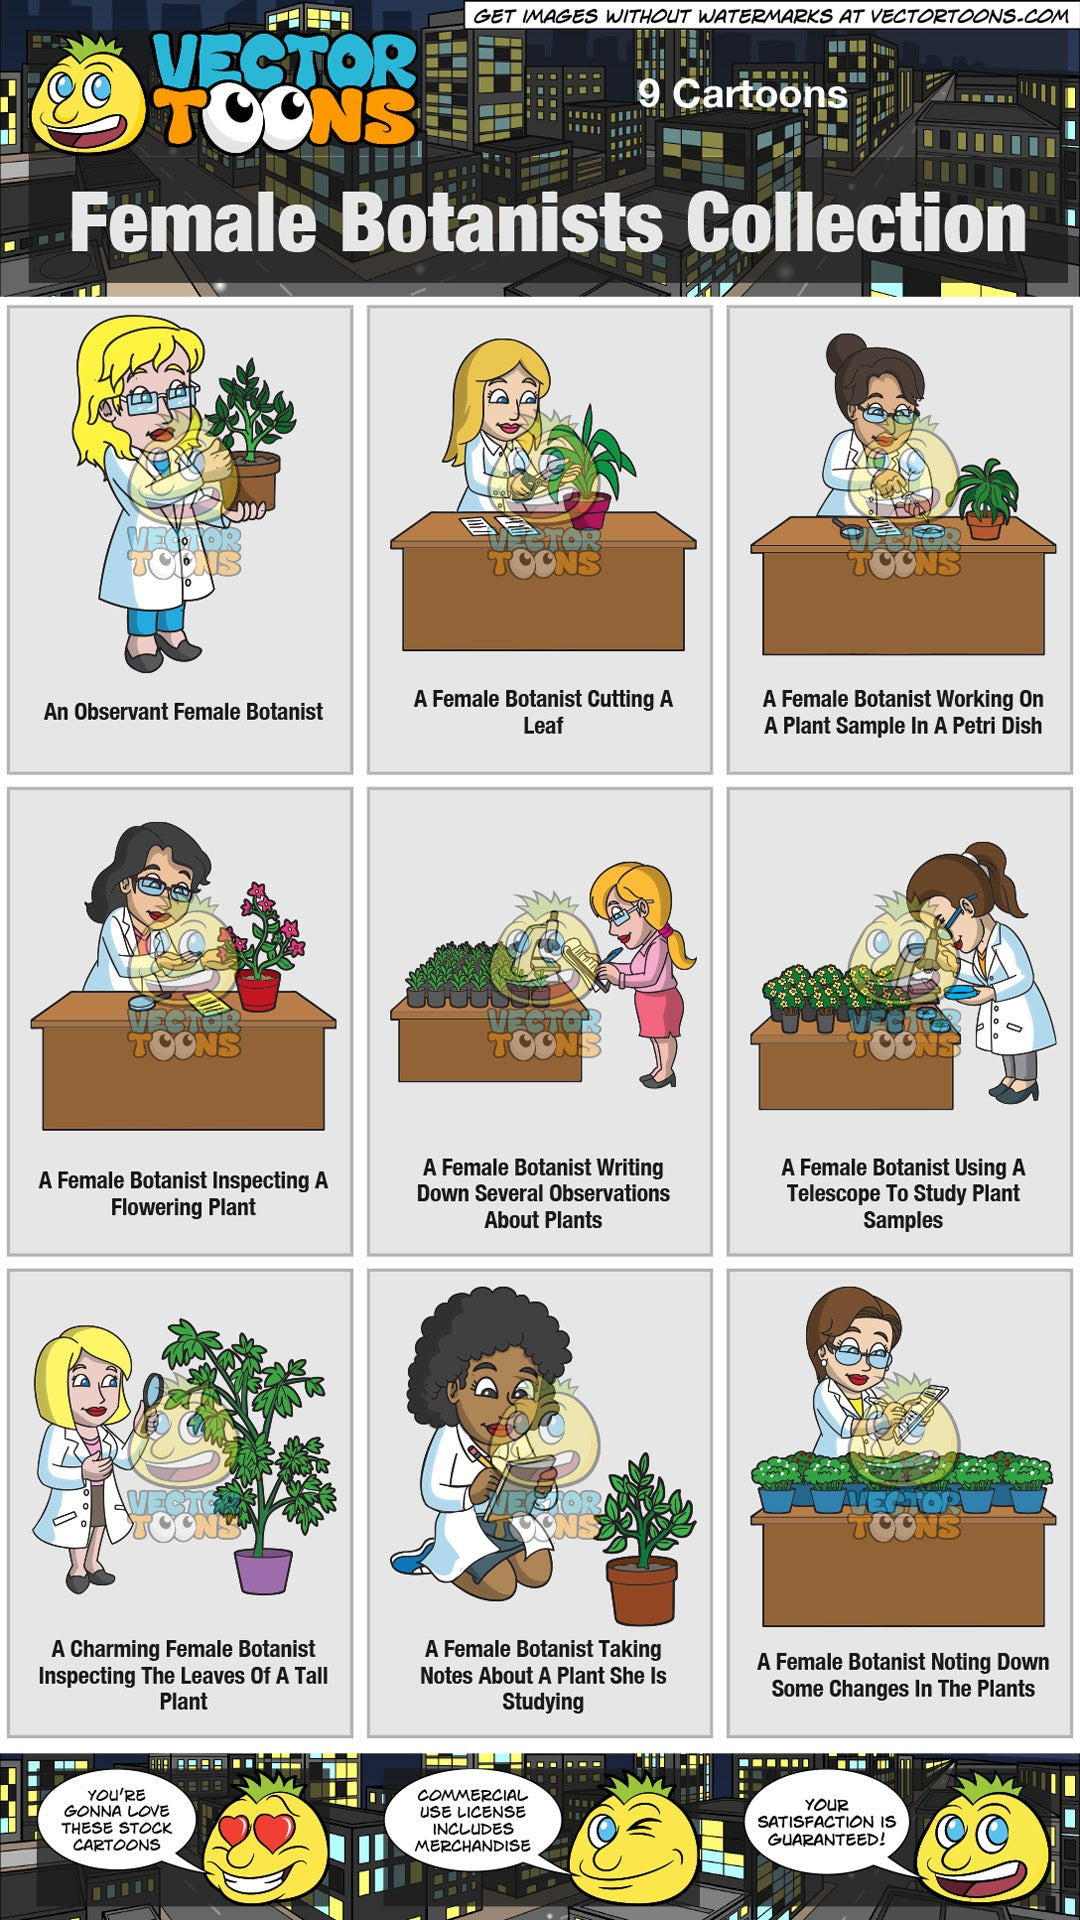 Female Botanists Collection